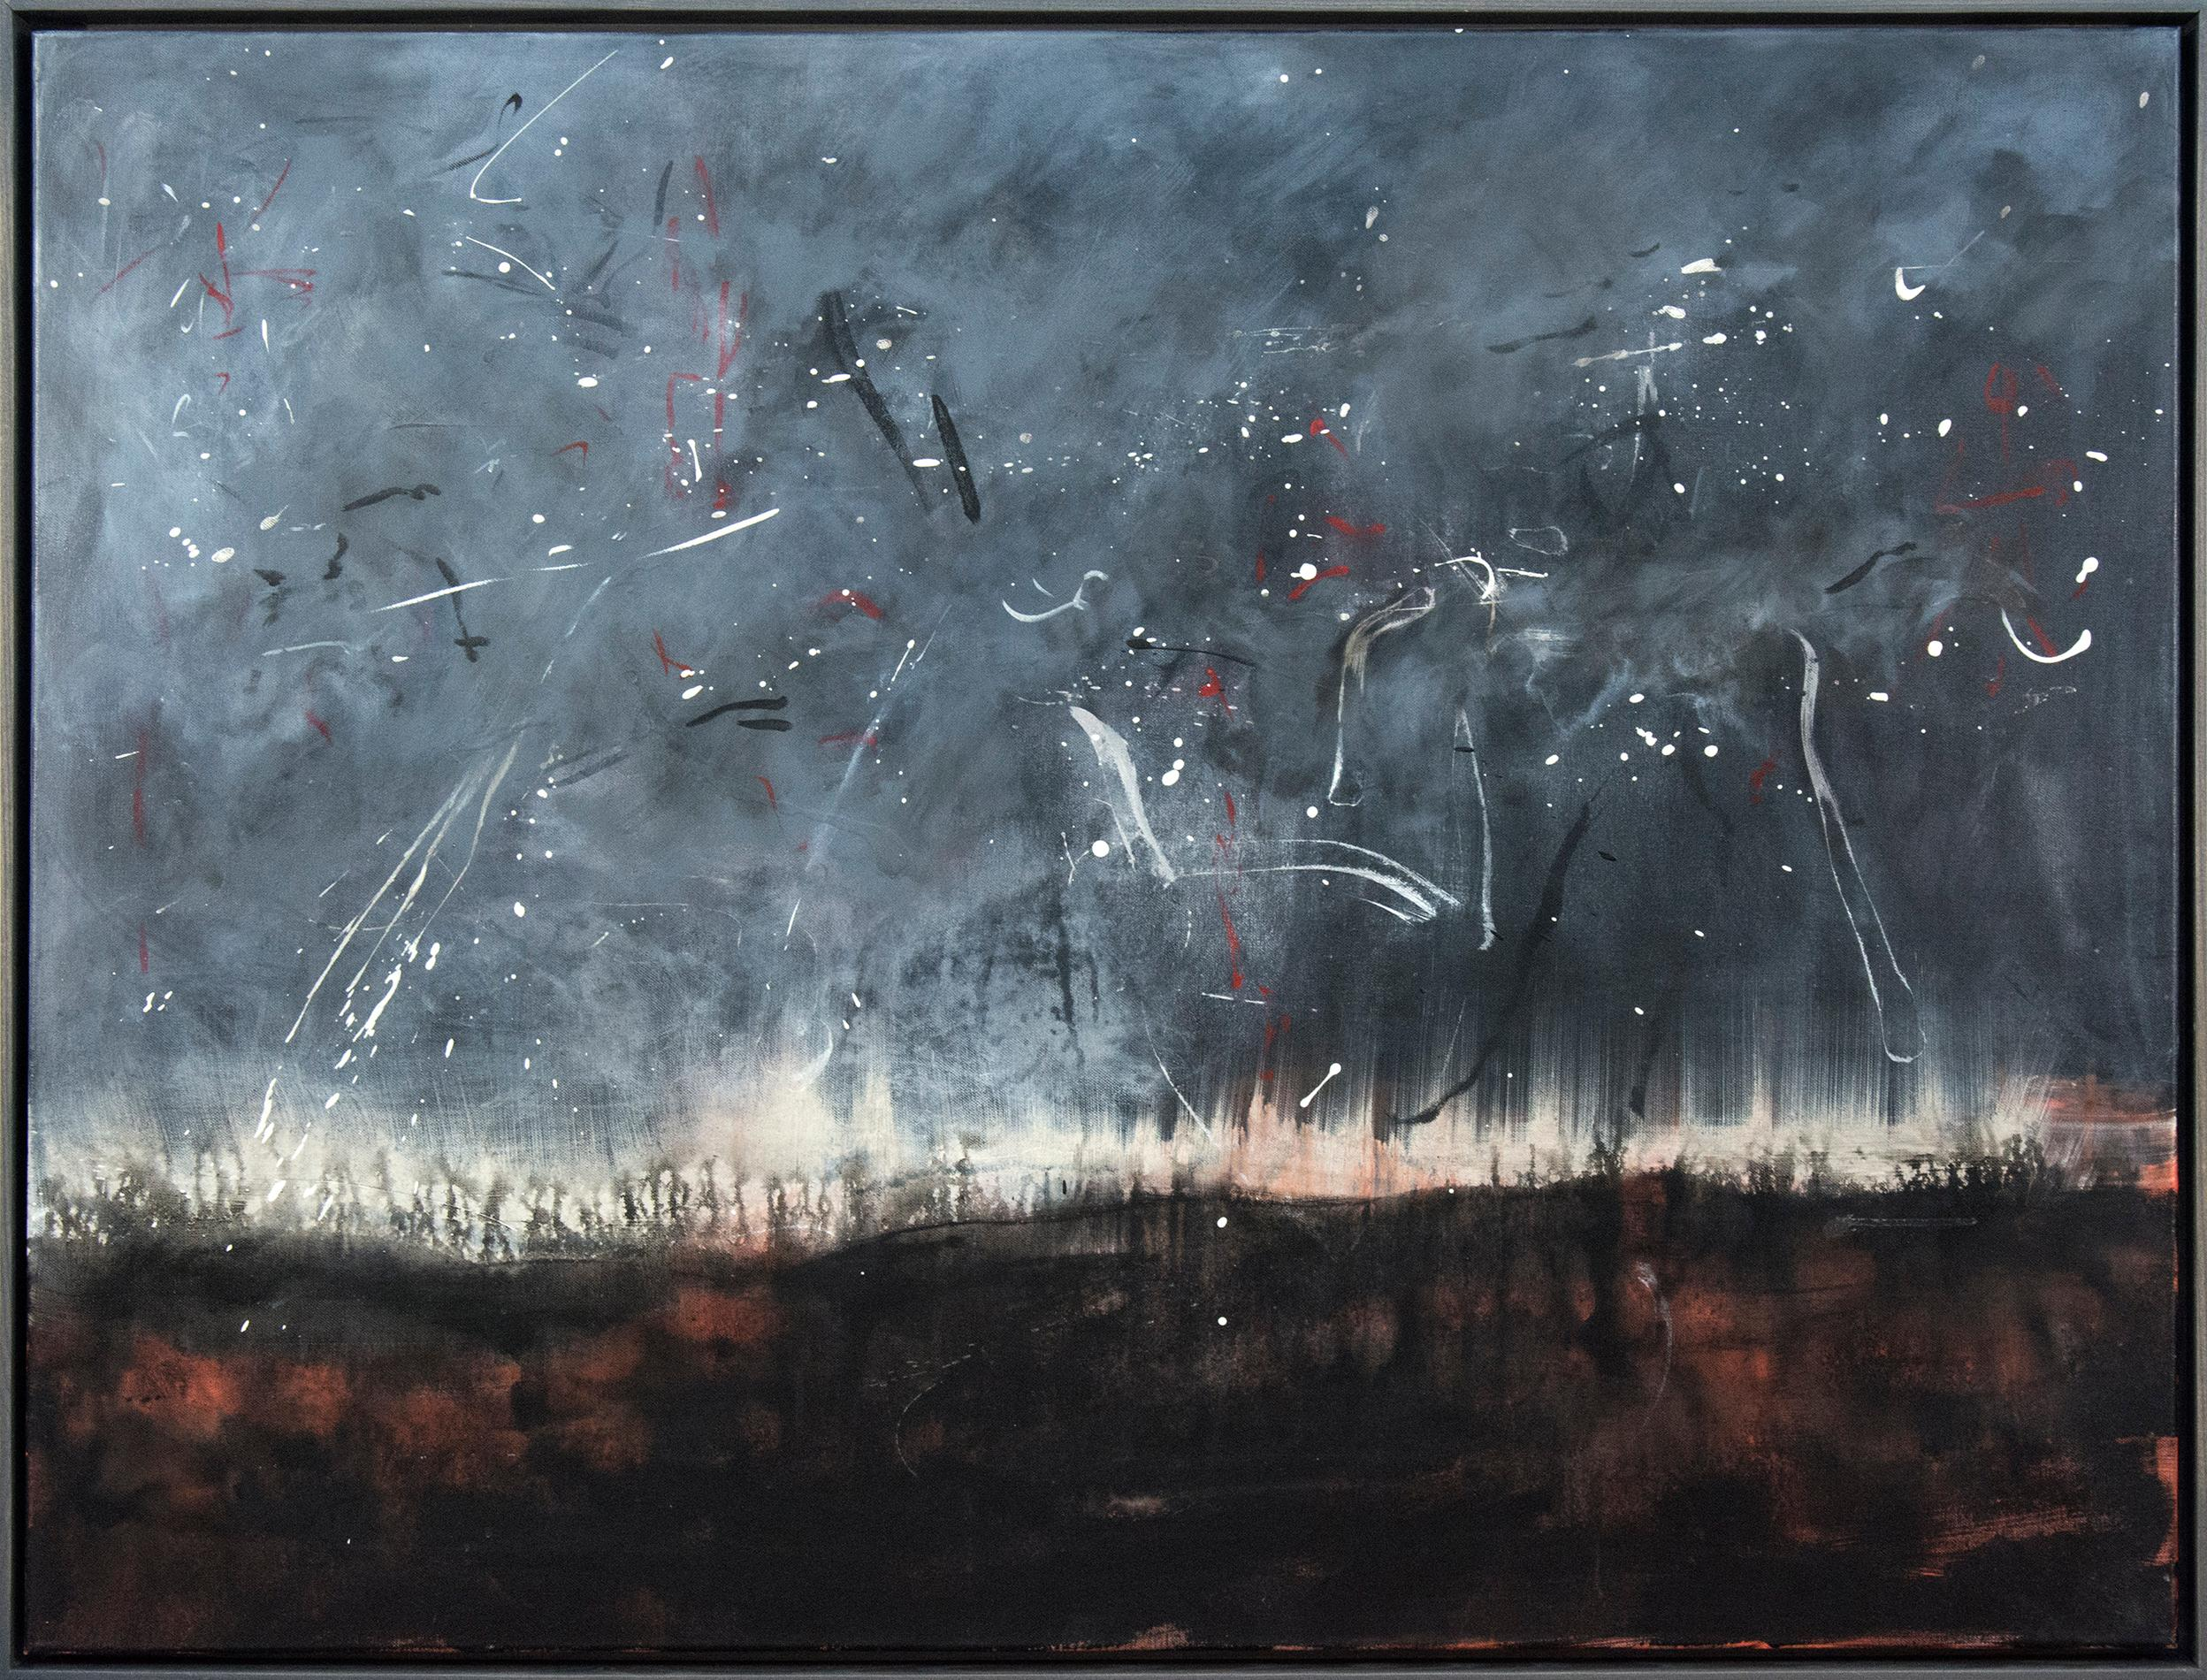 Storm - large, dark, smoky, atmospheric abstracted landscape, acrylic on canvas